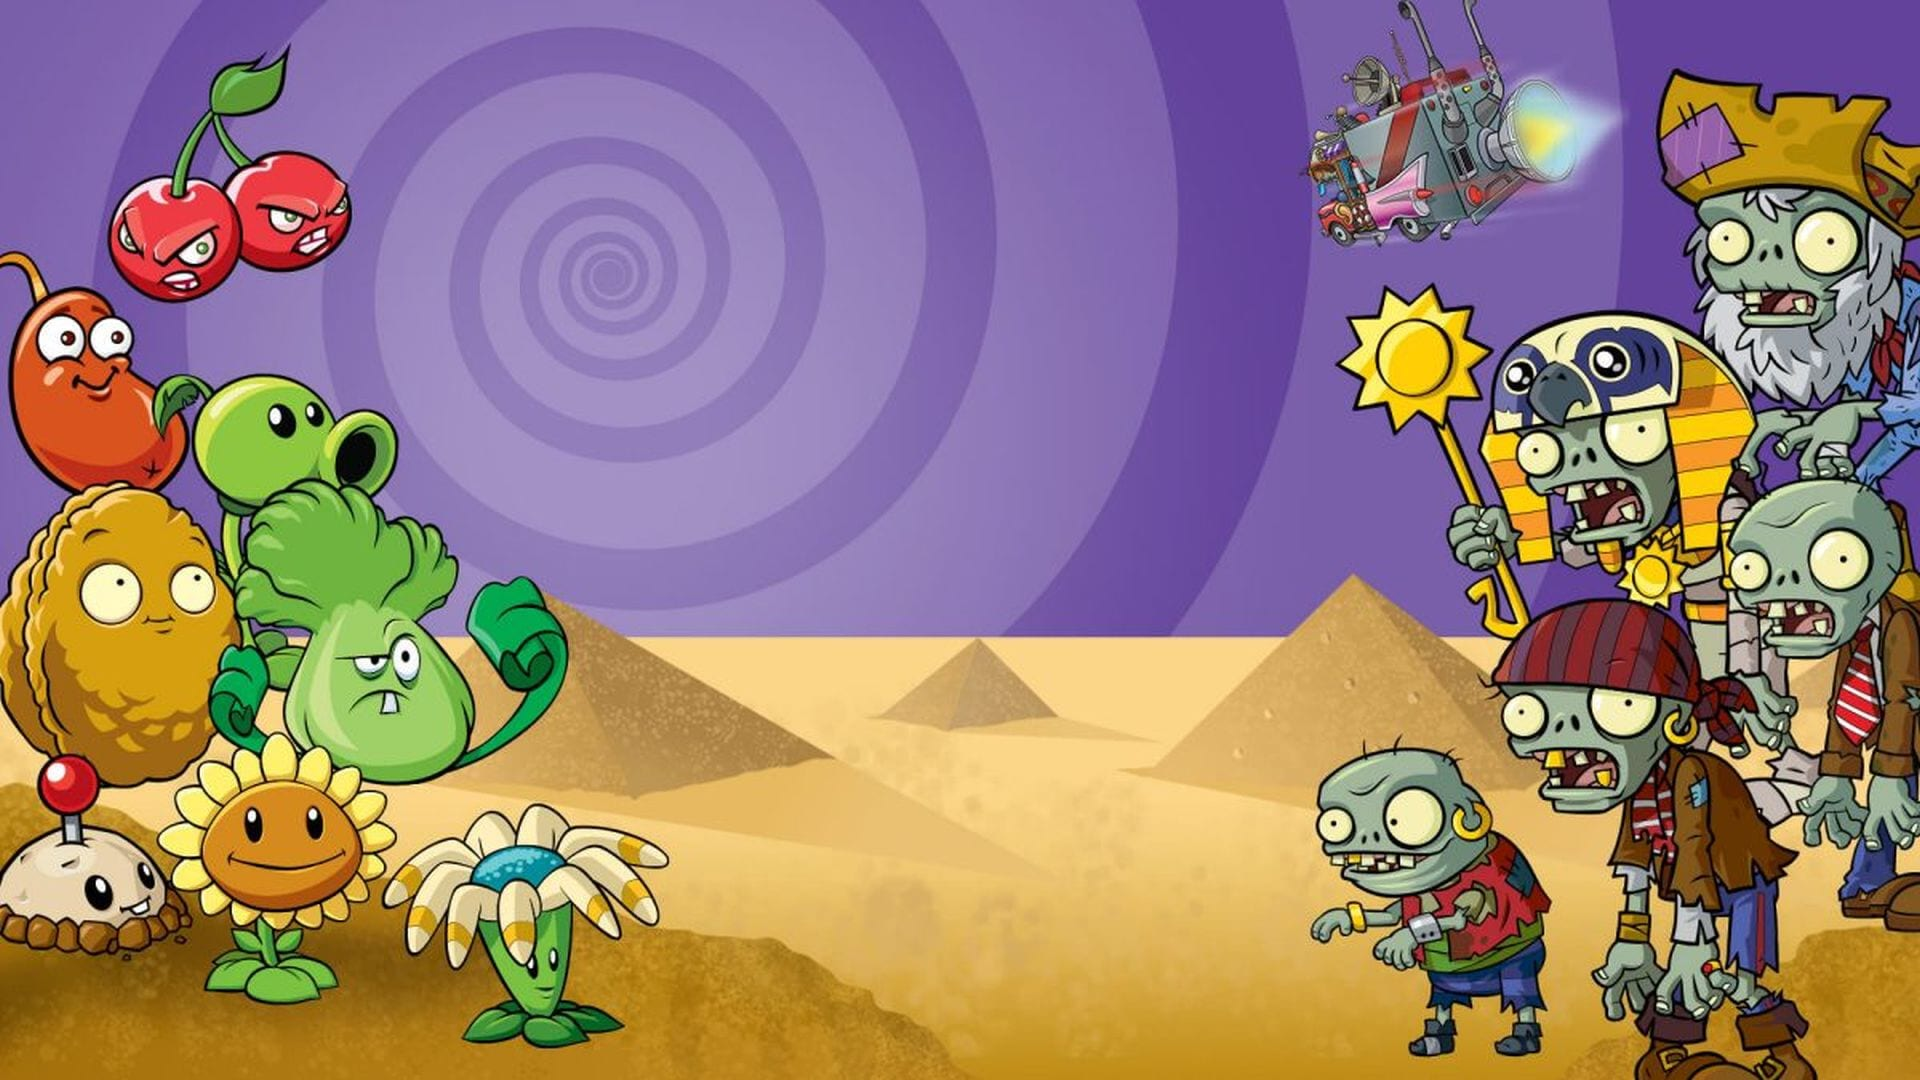 Plants vs. Zombies 3 revealed